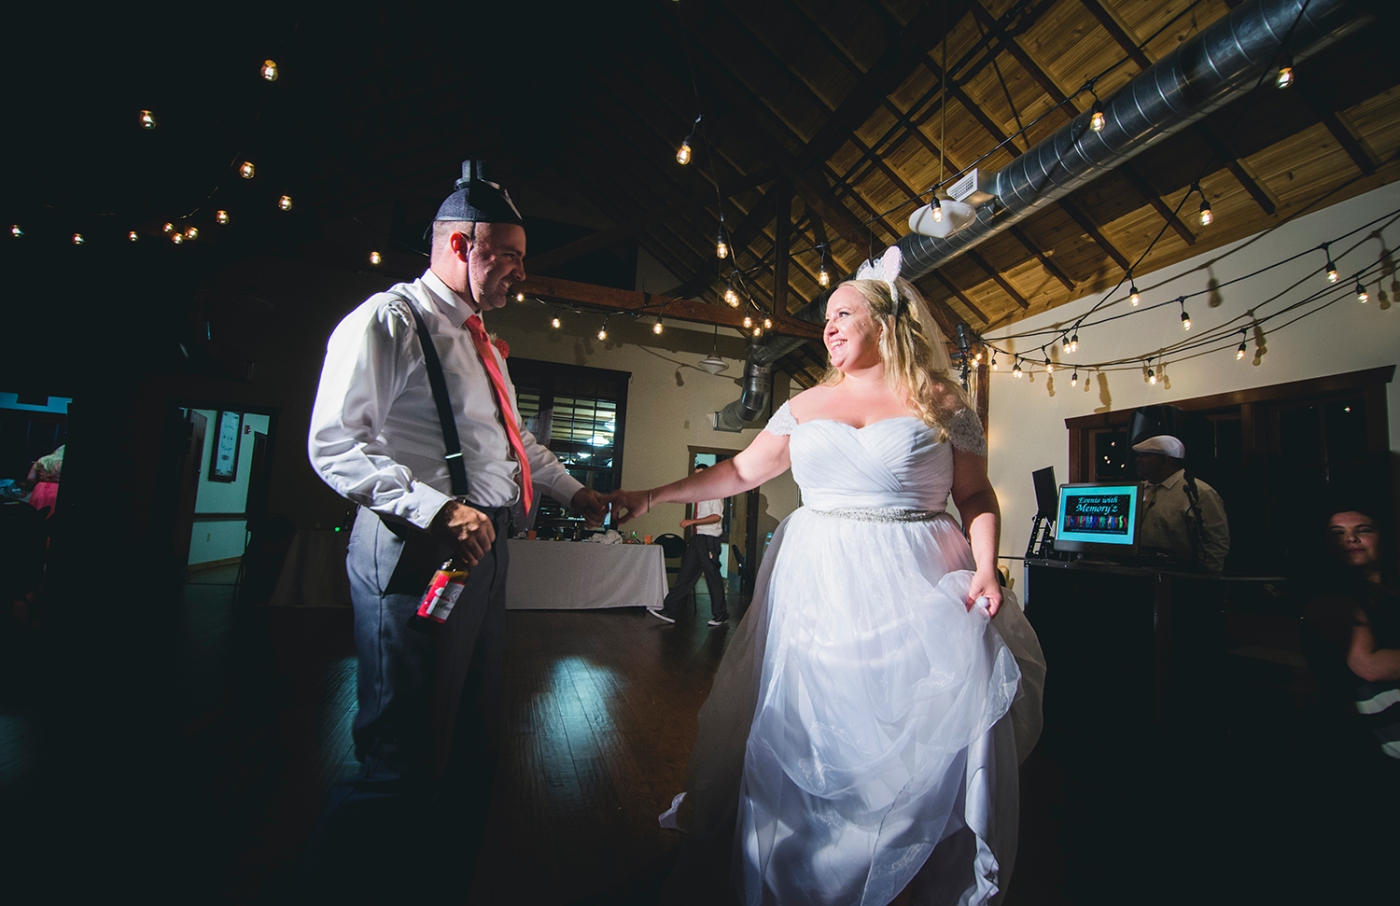 Jane_S_Seattle_photography_Kadie_and_Steve_2016_Des_Moines_Marina_Wedding_DSC_2892